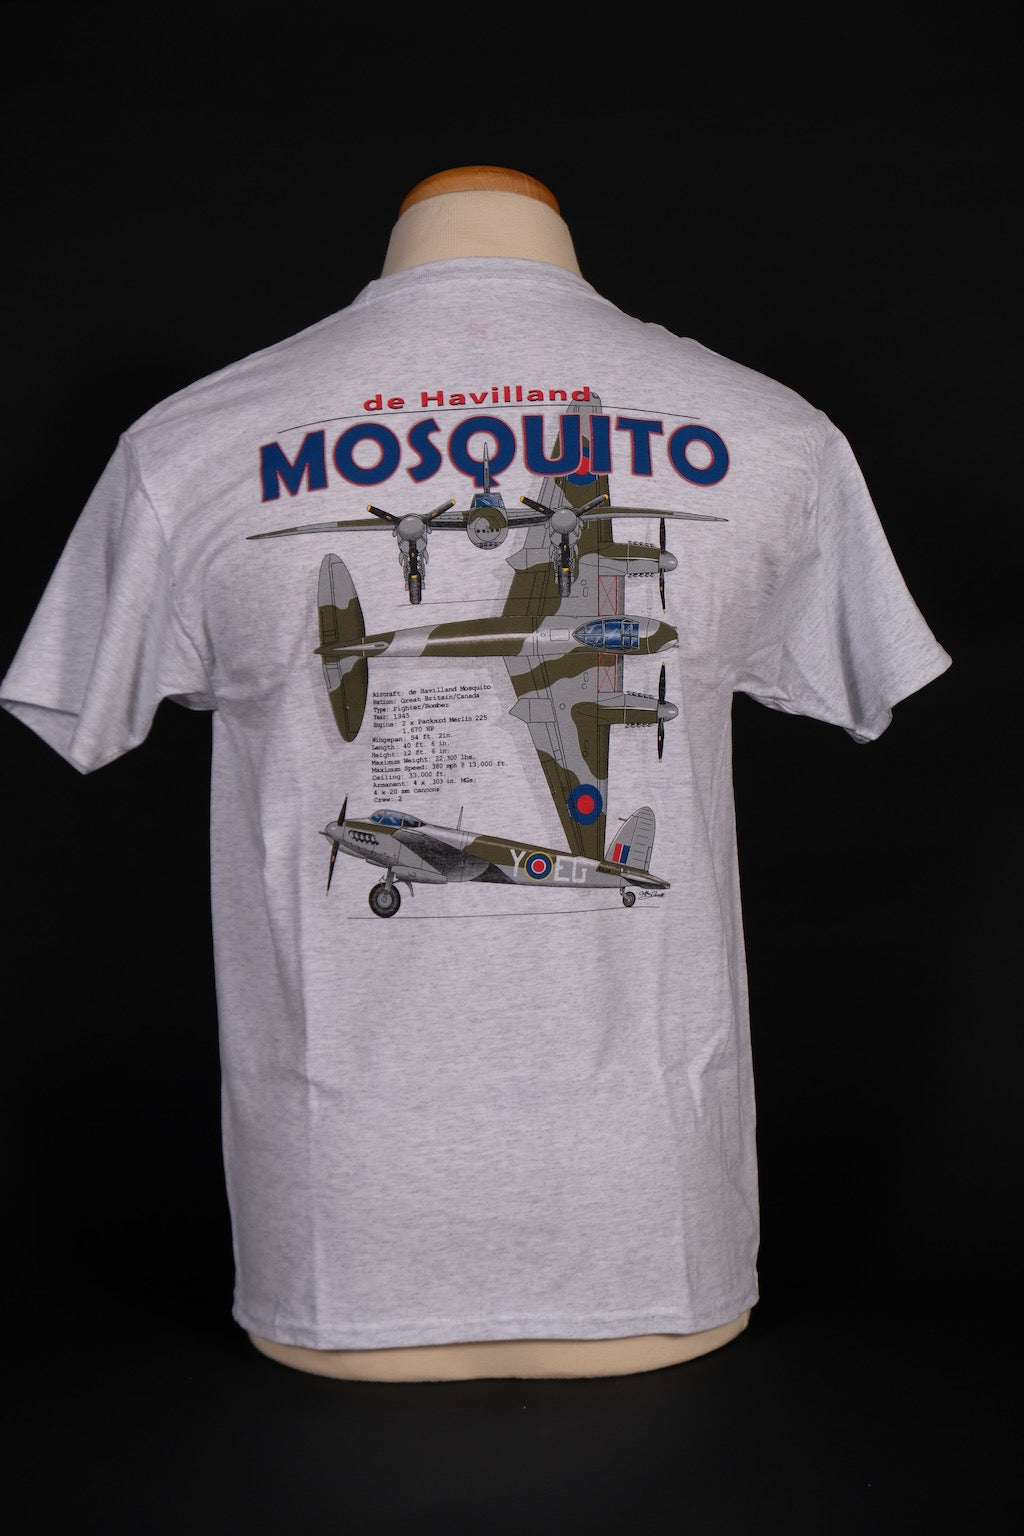 Mosquito Screen Print Tee